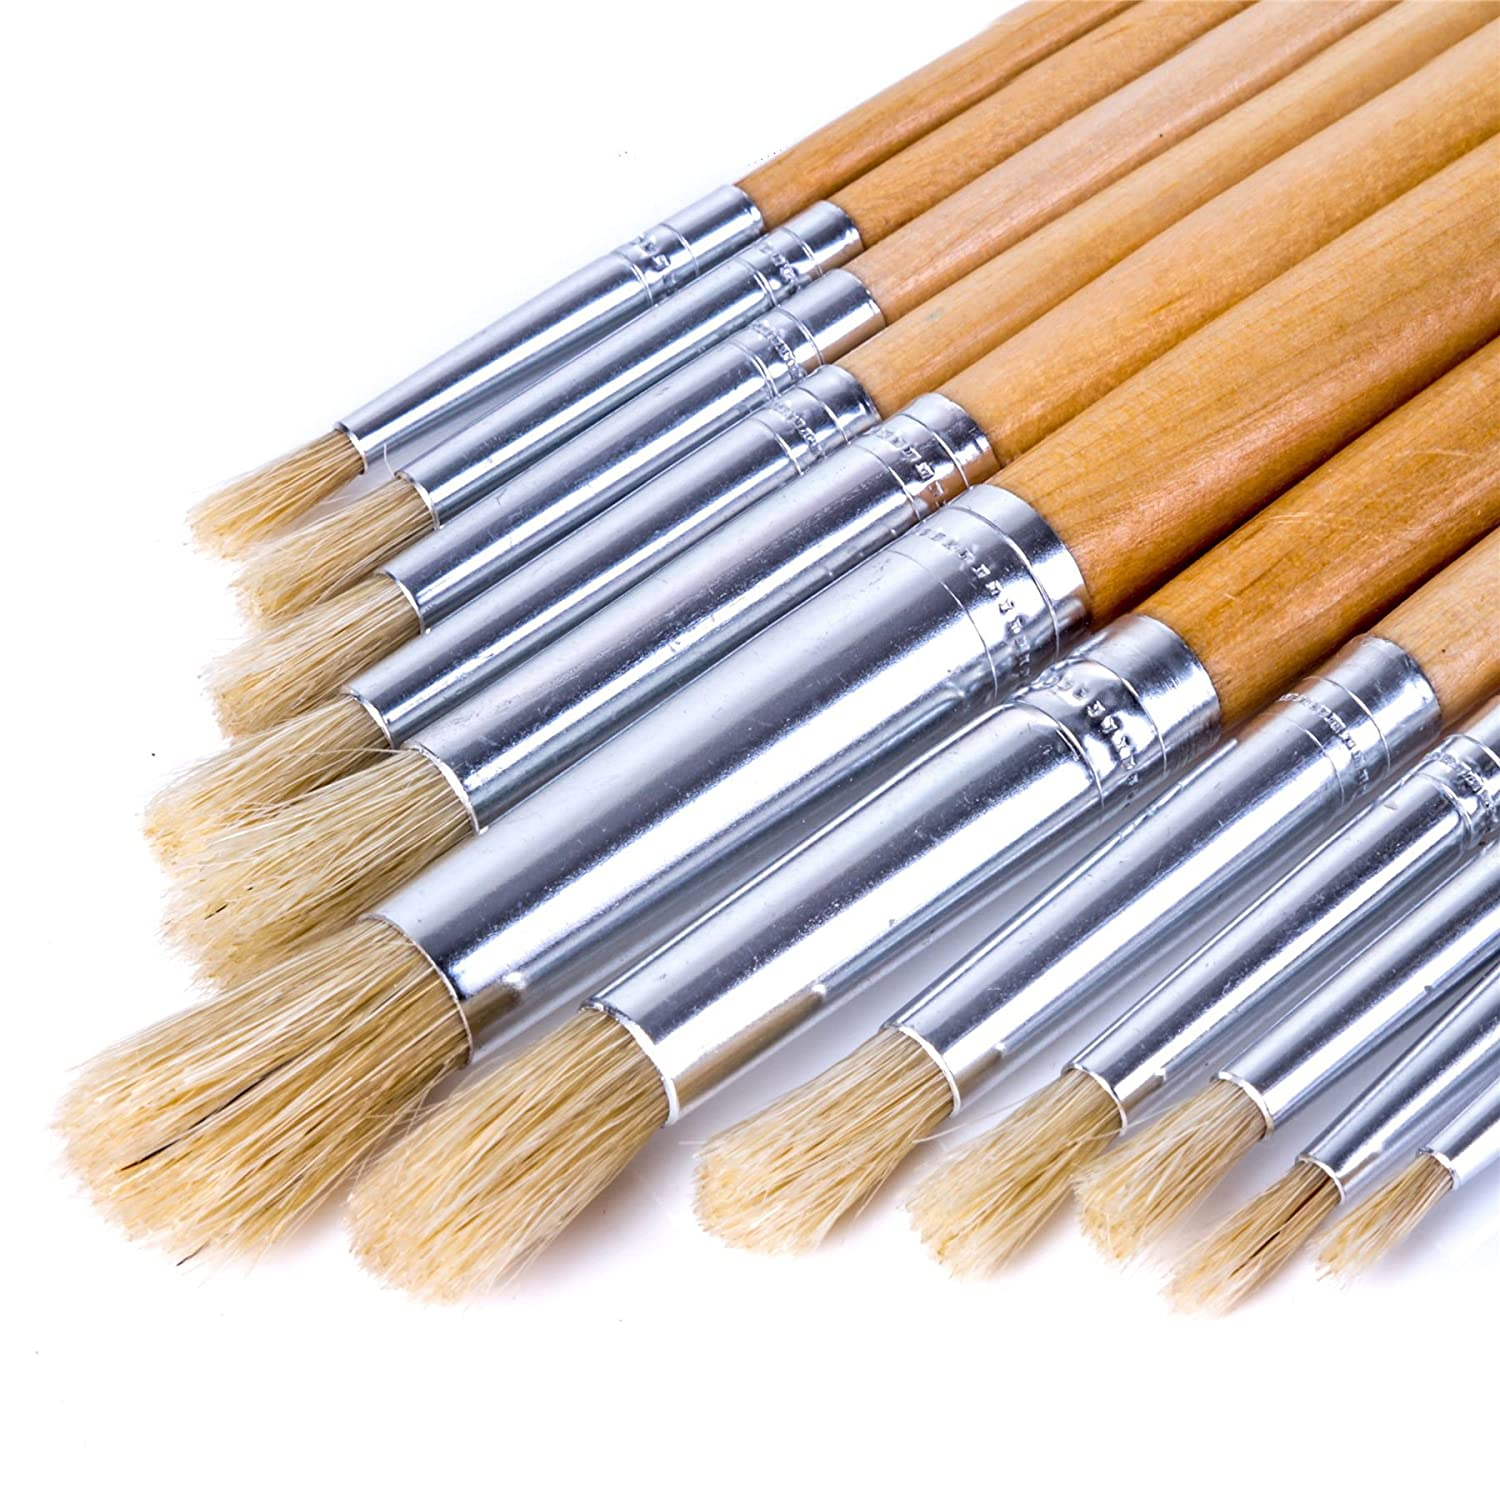 12x Small To Large Round Tipped Artist Paint Brush Set - 1mm - 12mm White Hinge